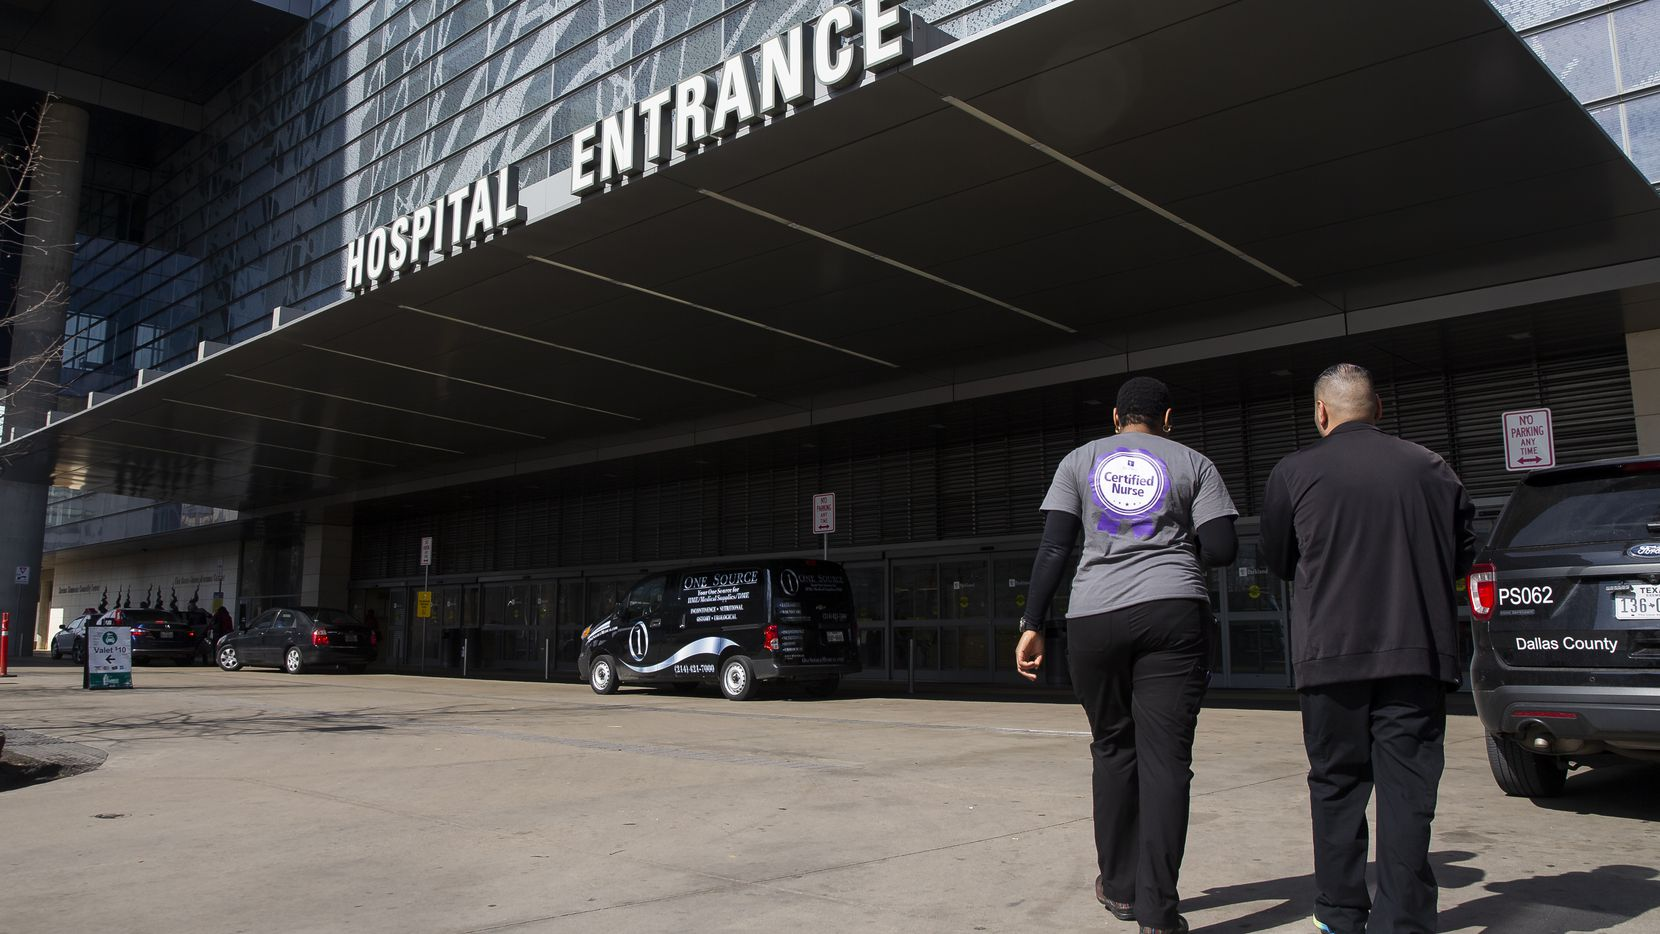 A patient is being tested for coronavirus, Assistant City Manager Jon Fortune said, at Parkland Memorial Hospital, shown Friday, Jan. 31, 2020 in Dallas.